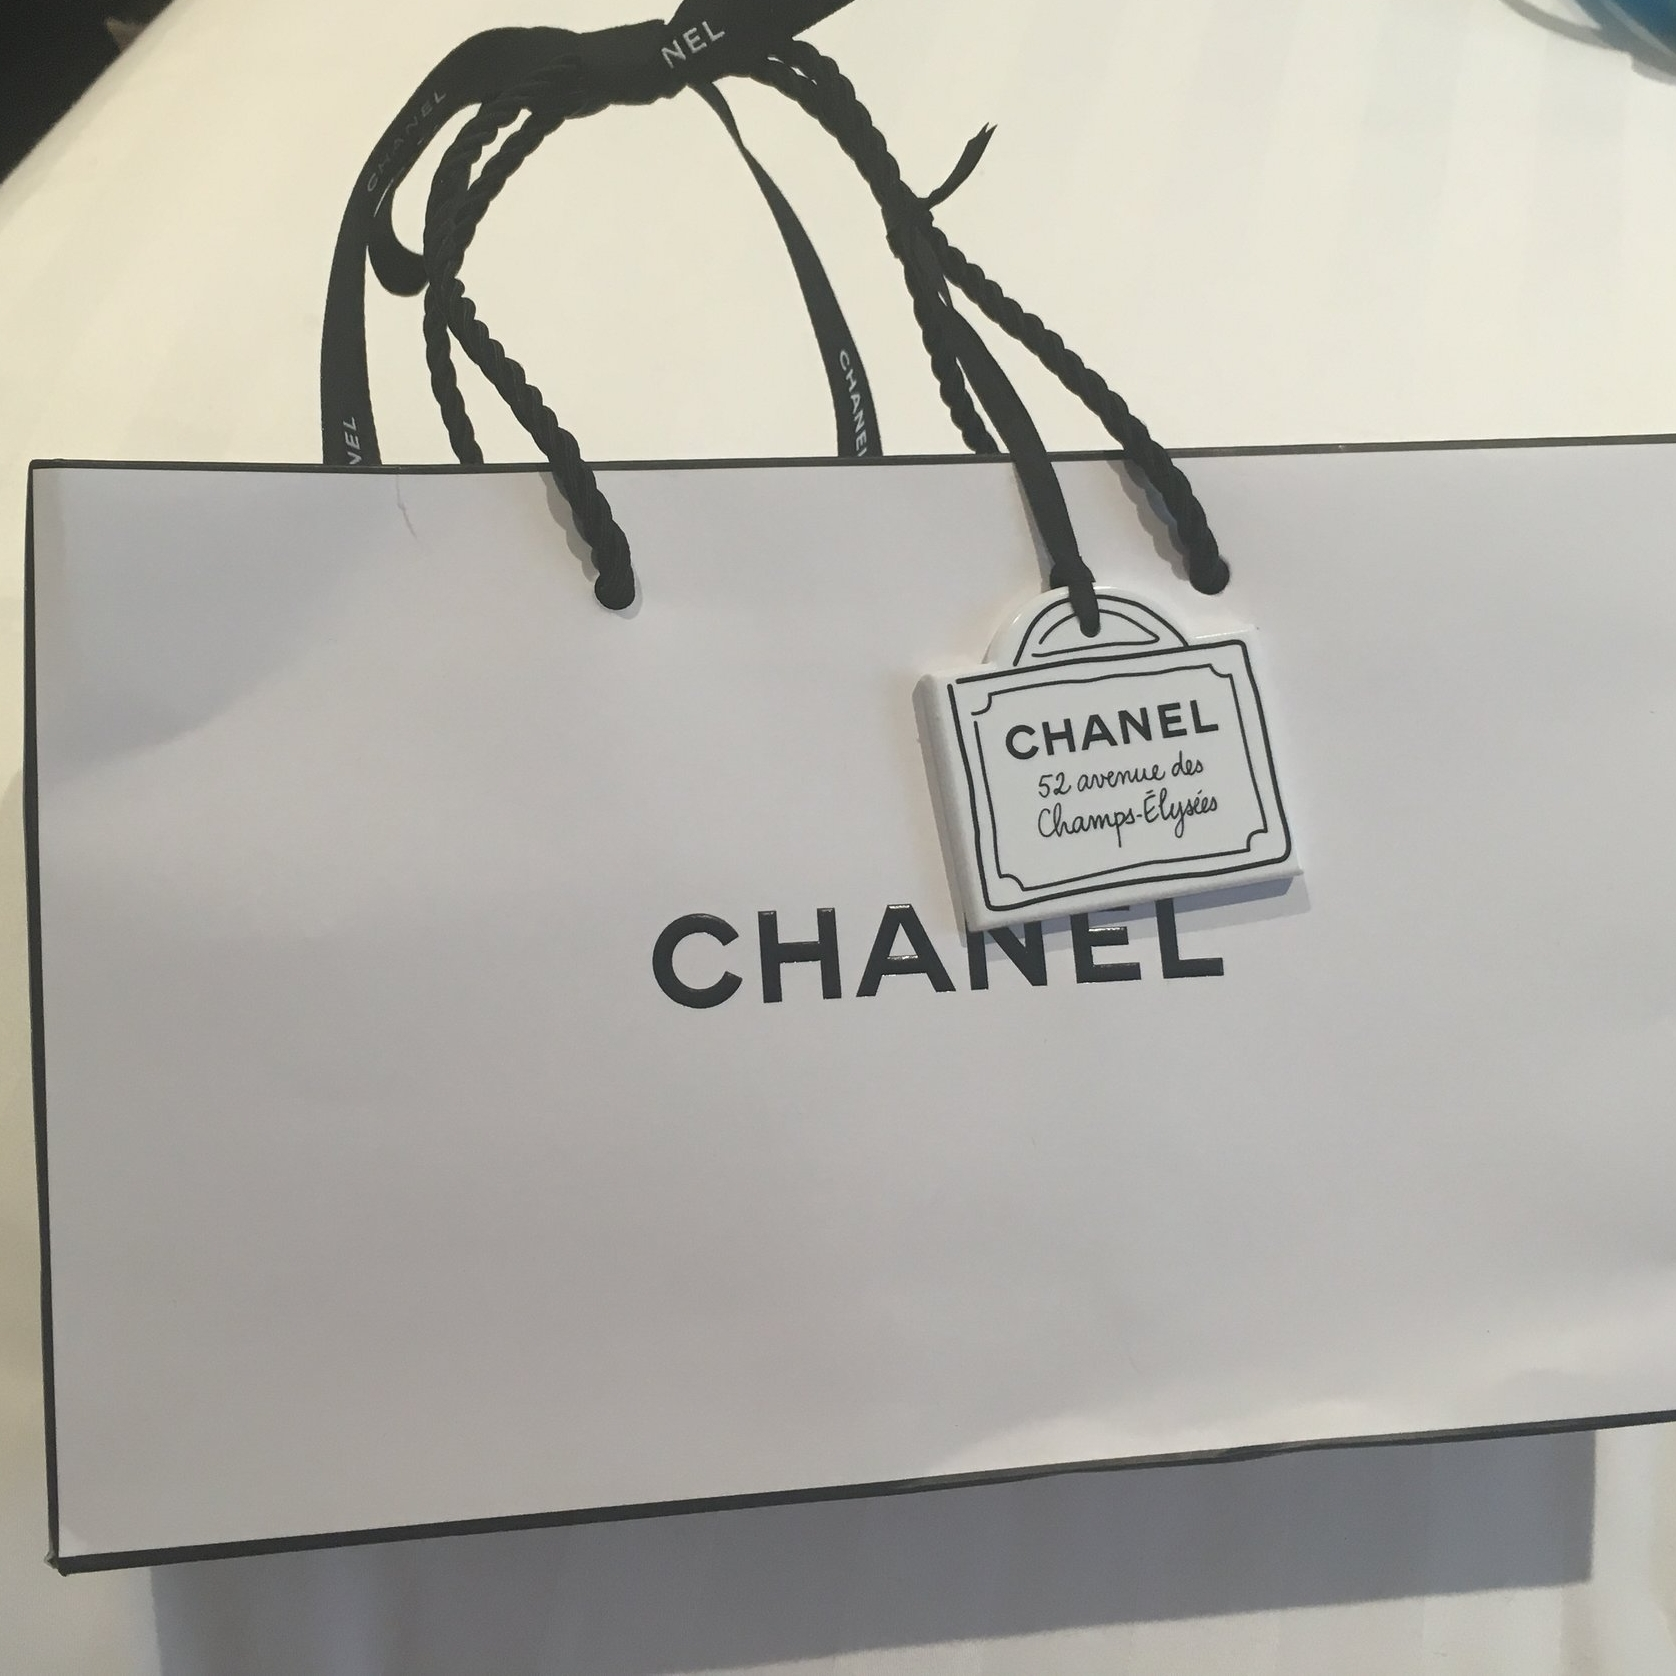 Chanel, Paris by The Doubtful Traveller